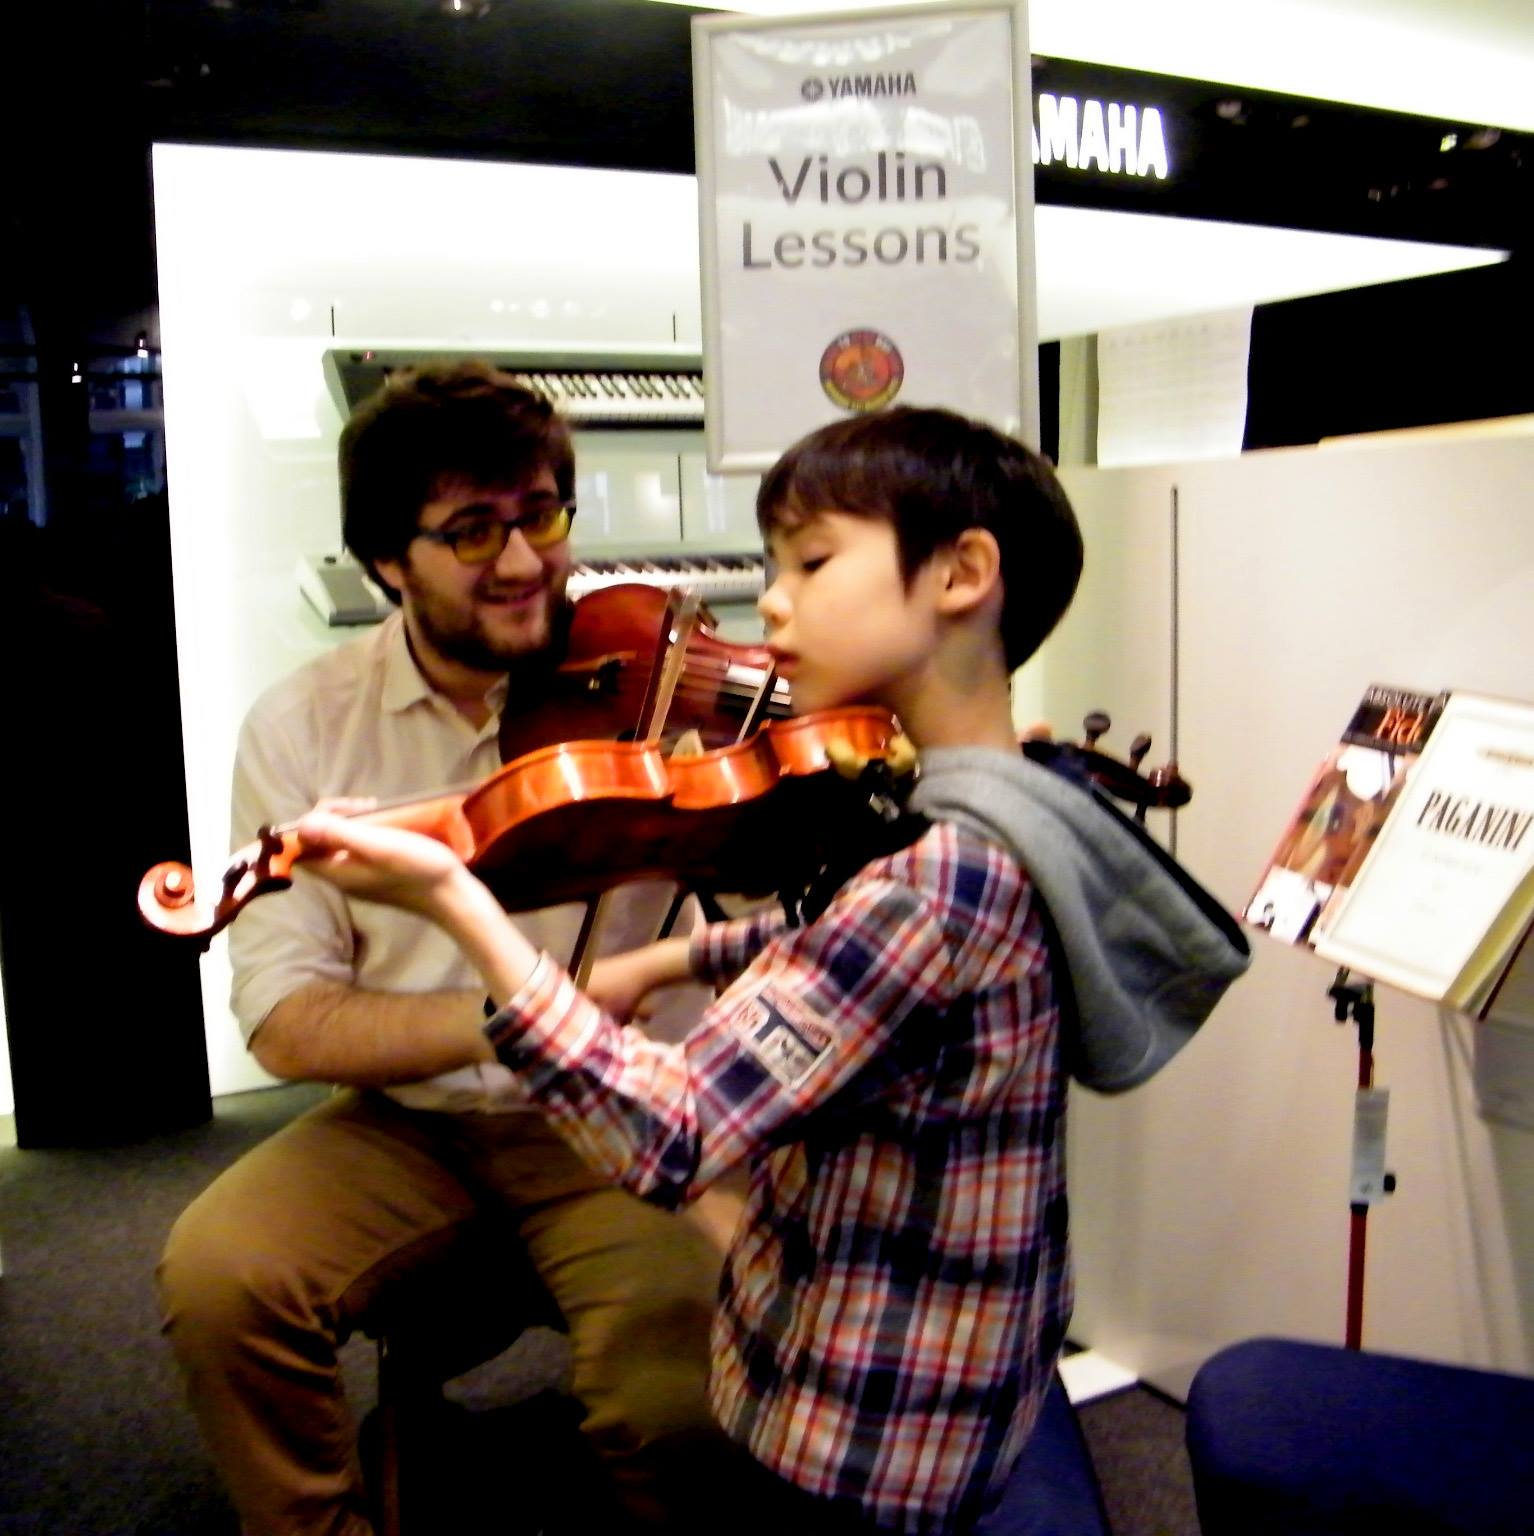 Elliot guides a first time Violin player through the basics during a Yamaha Music 'Learn to Play Day' in 2015.